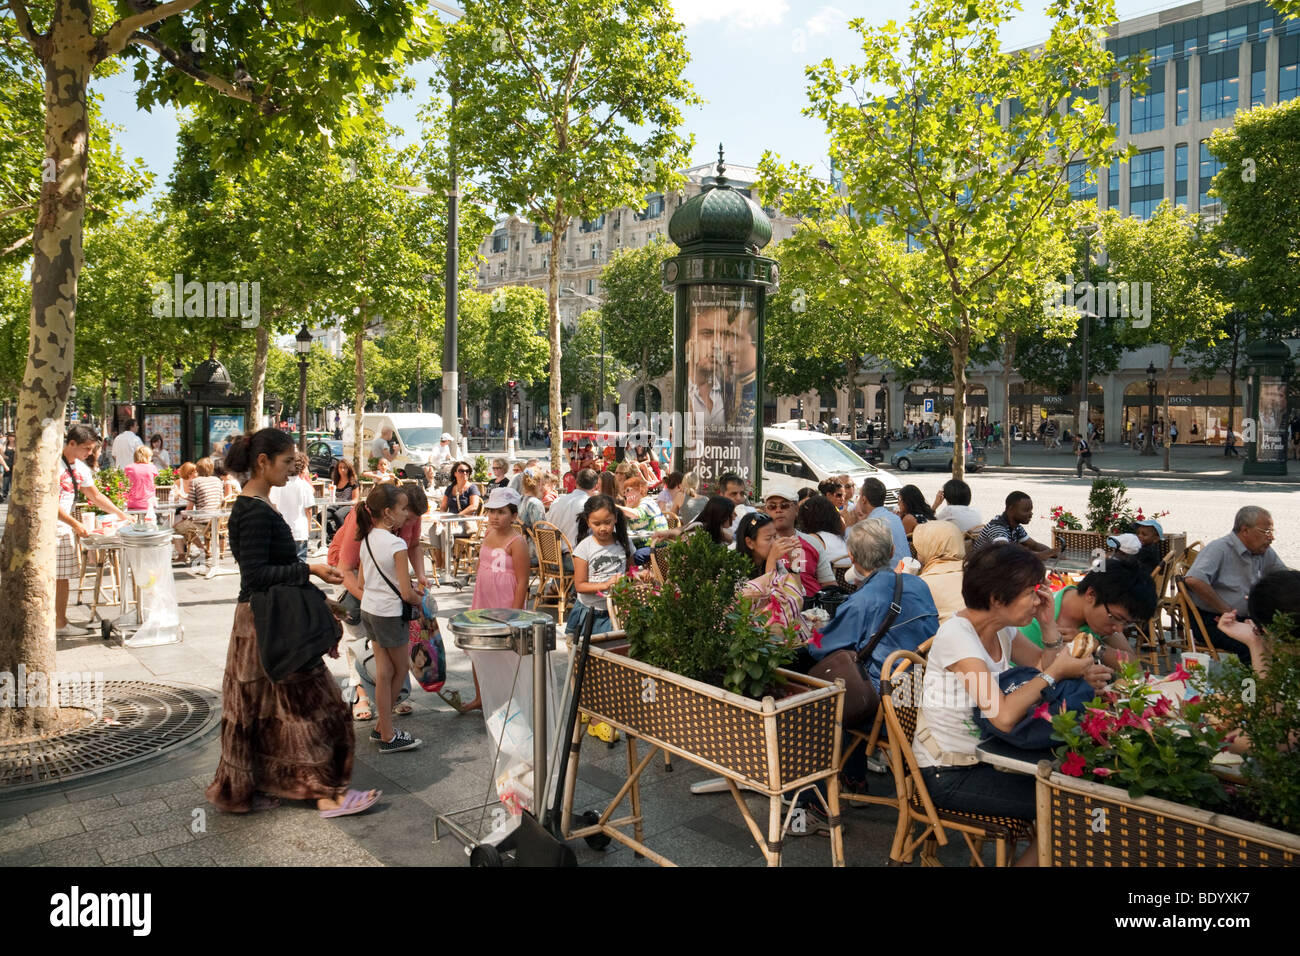 Outdoor cafe in paris with tower in background - People Eating At An Outside Cafe The Champs Elysee Paris France Stock